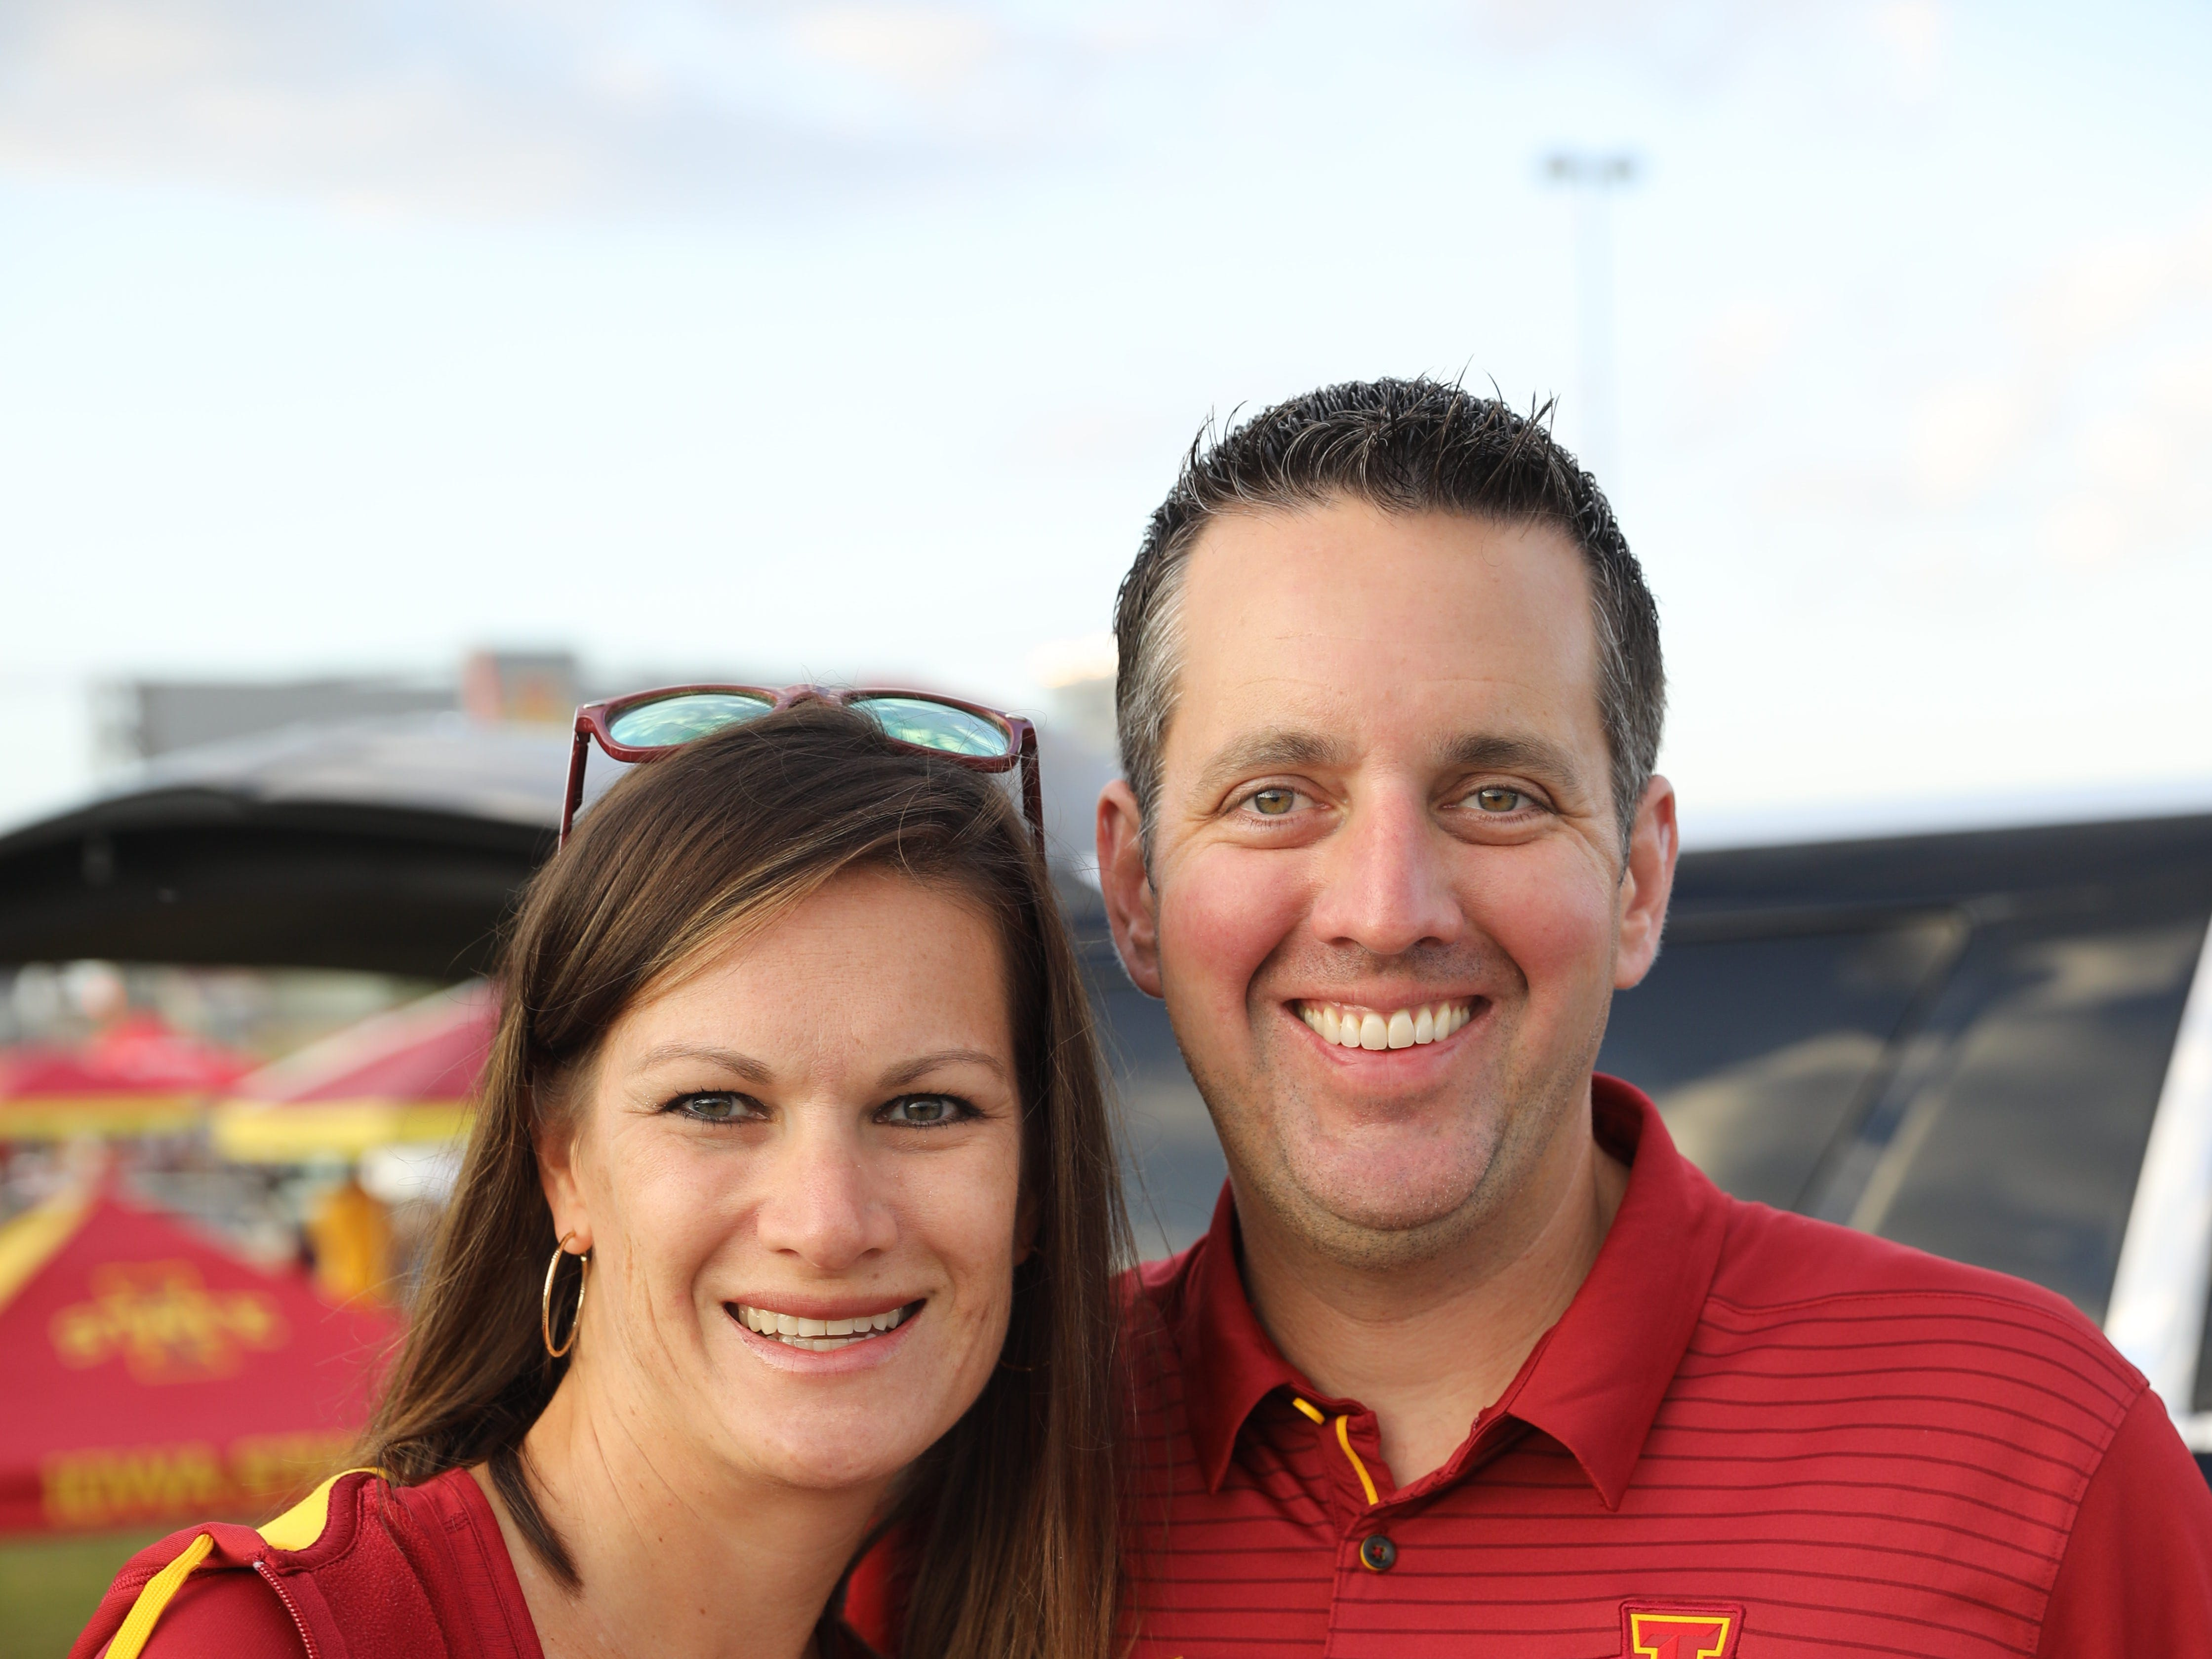 Amy Glandon and Chris Glandon of Omaha Saturday, Sept. 15, 2018, before the Iowa State football game against Oklahoma in Ames.